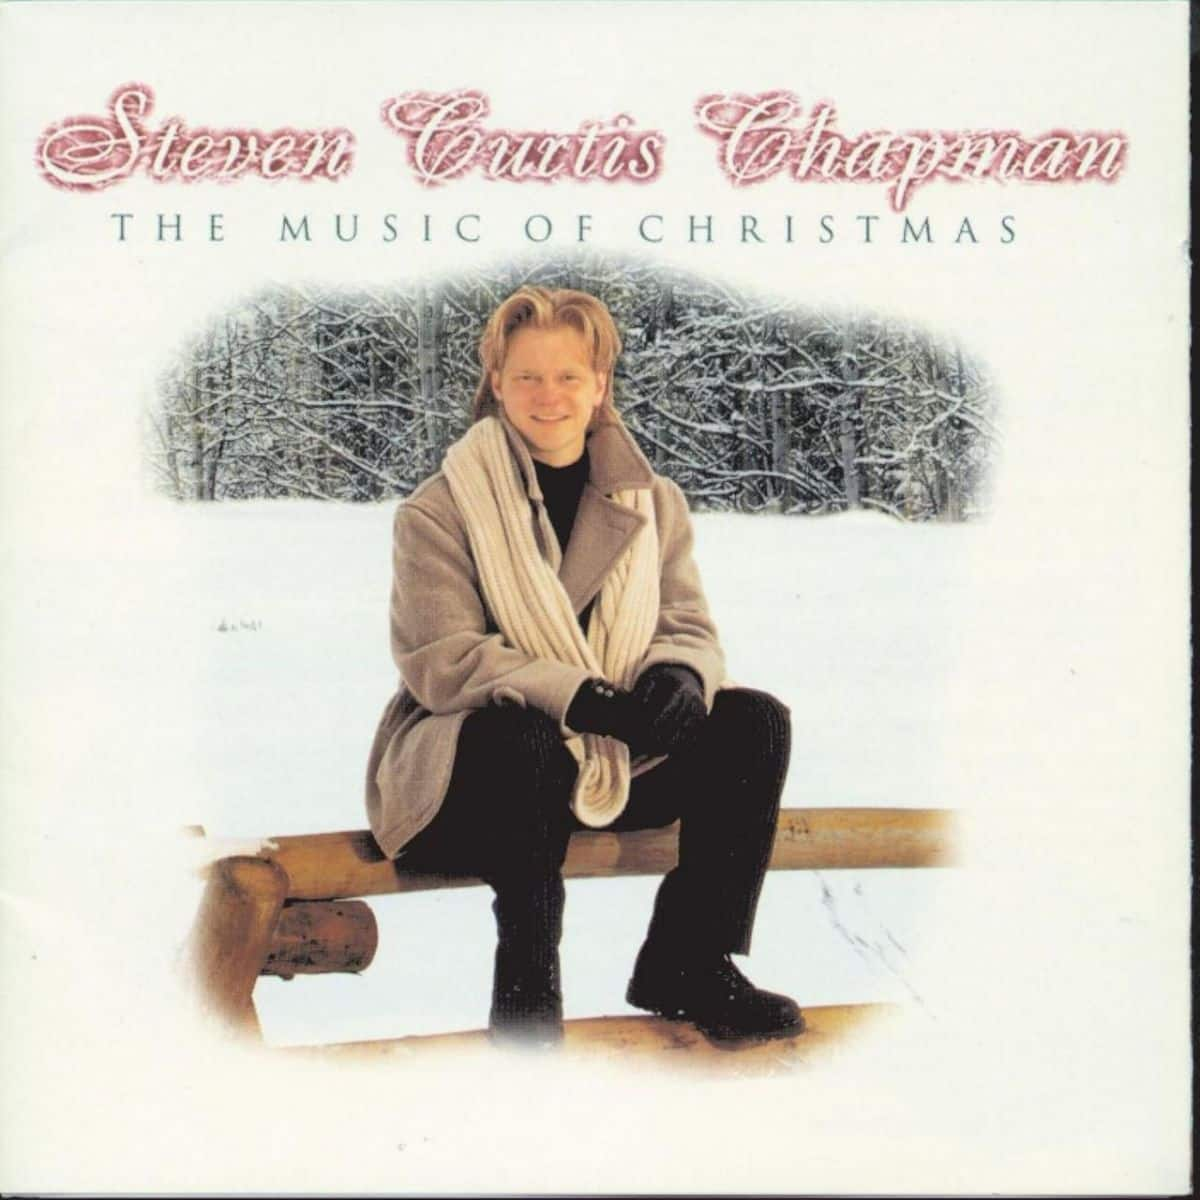 Christian Christmas Music Youtube.List Of Top 30 Contemporary Christian Christmas Songs From